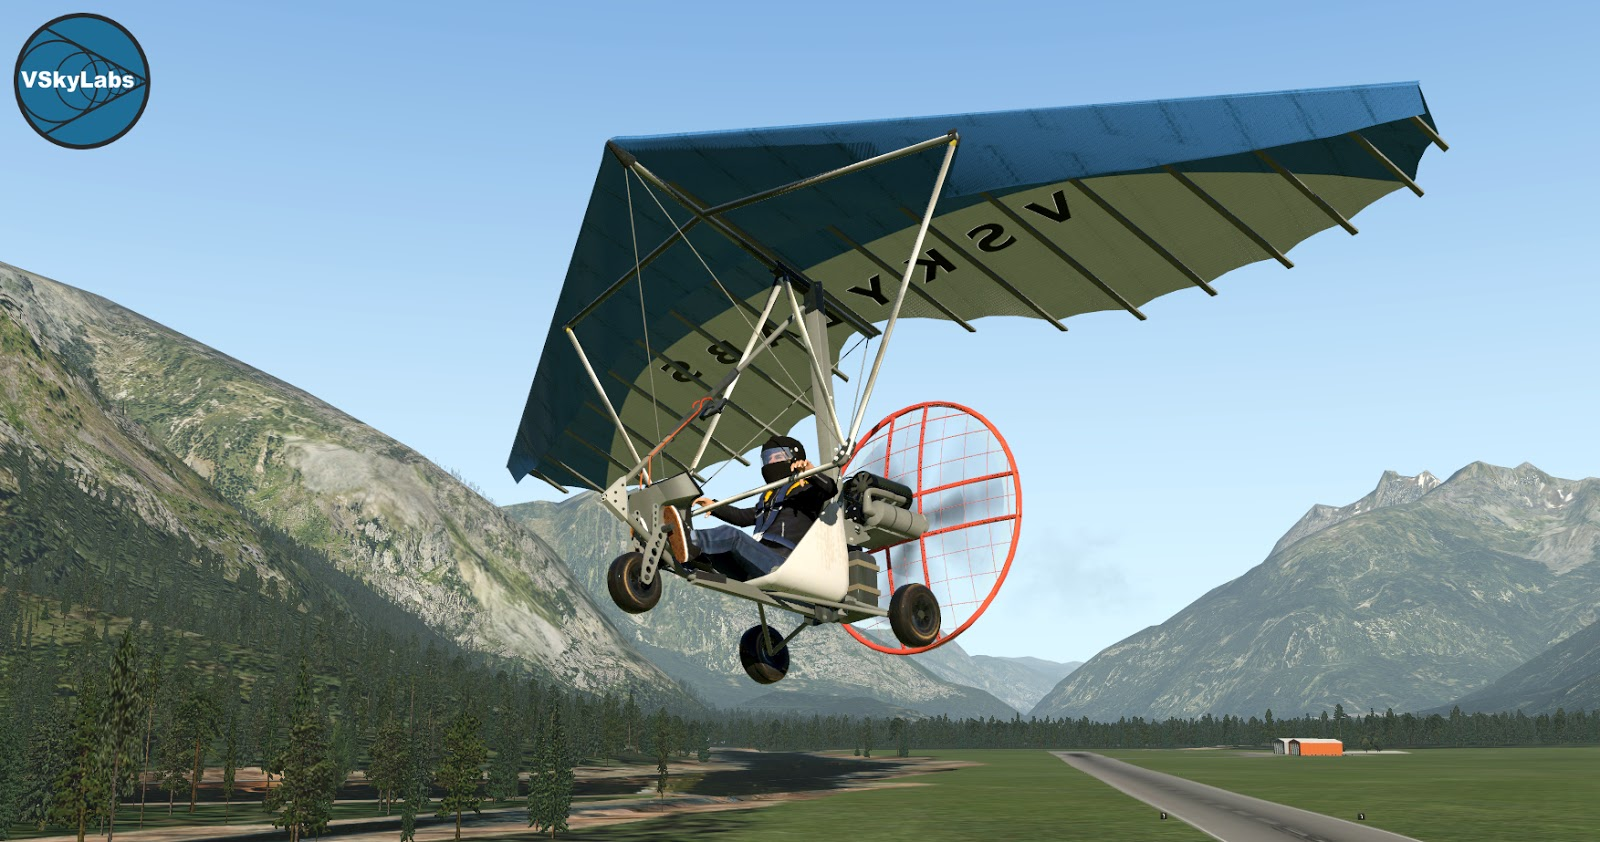 The Vskylabs Hang Glider Project